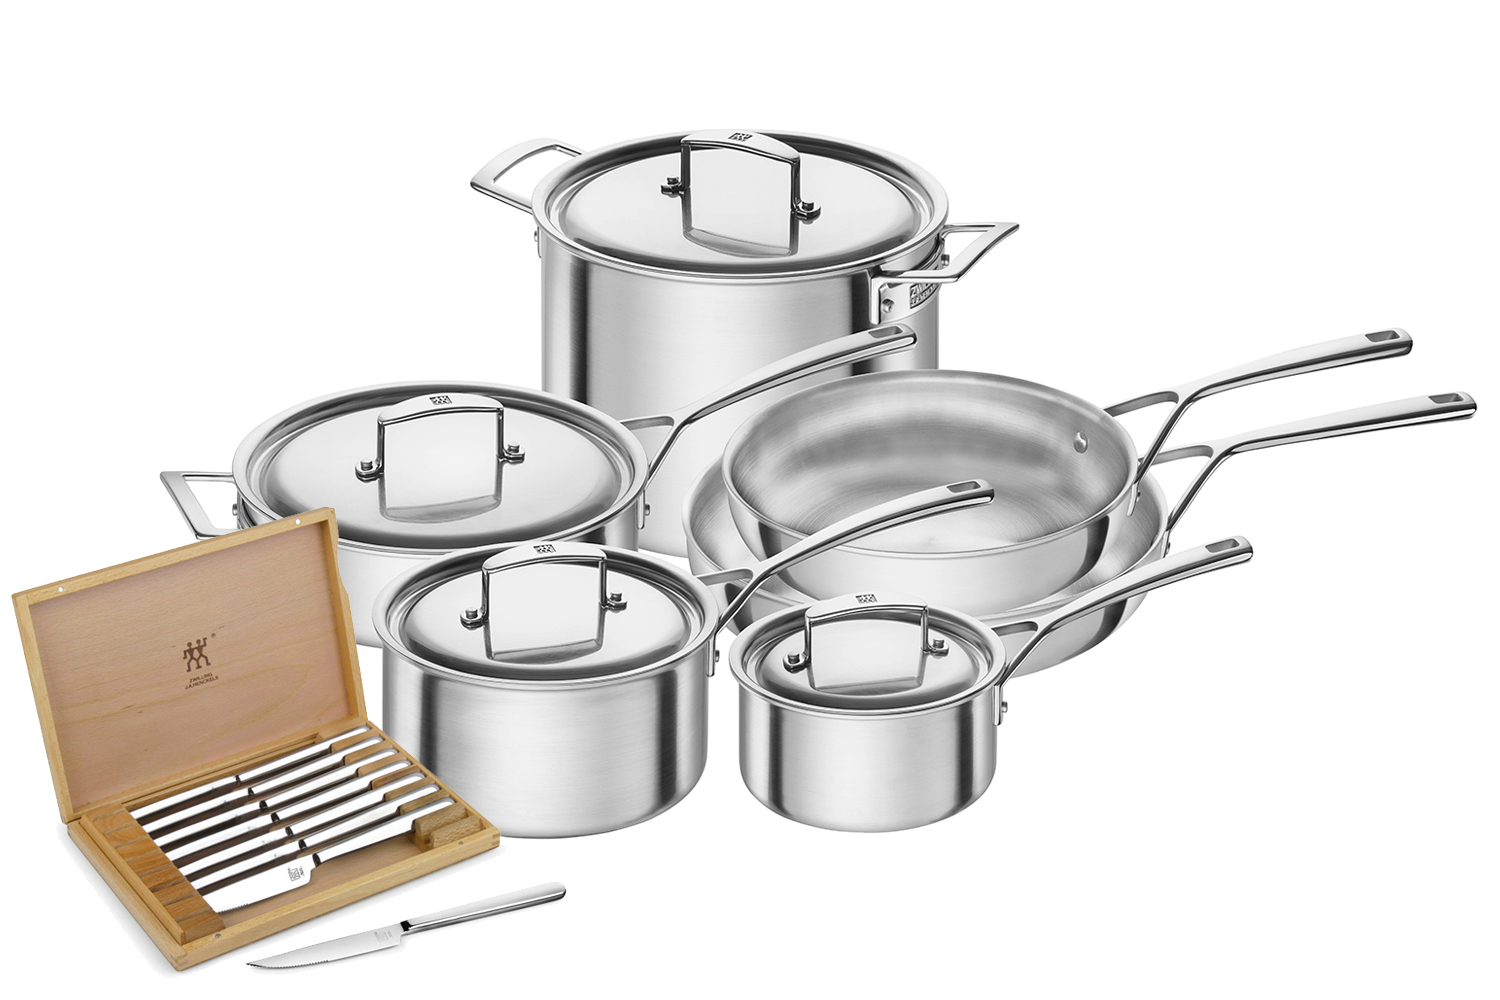 Zwilling J.A. Aurora 5-Ply Stainless Steel 10 Piece Cookware Set plus Free 8 pc. Knife Set